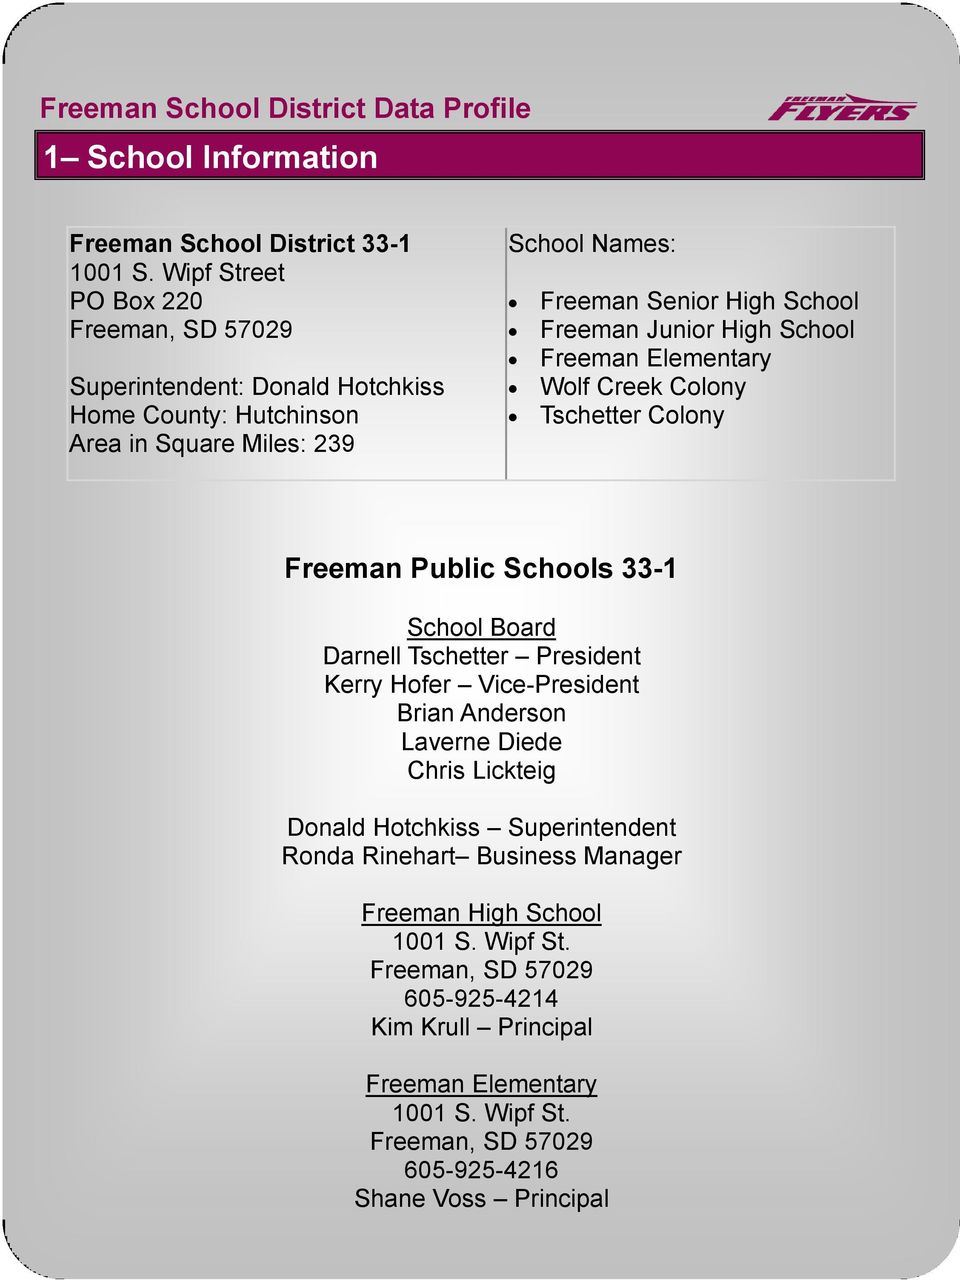 Freeman Junior High School Freeman Elementary Wolf Creek Colony Tschetter Colony Freeman Public Schools 33-1 School Board Darnell Tschetter President Kerry Hofer